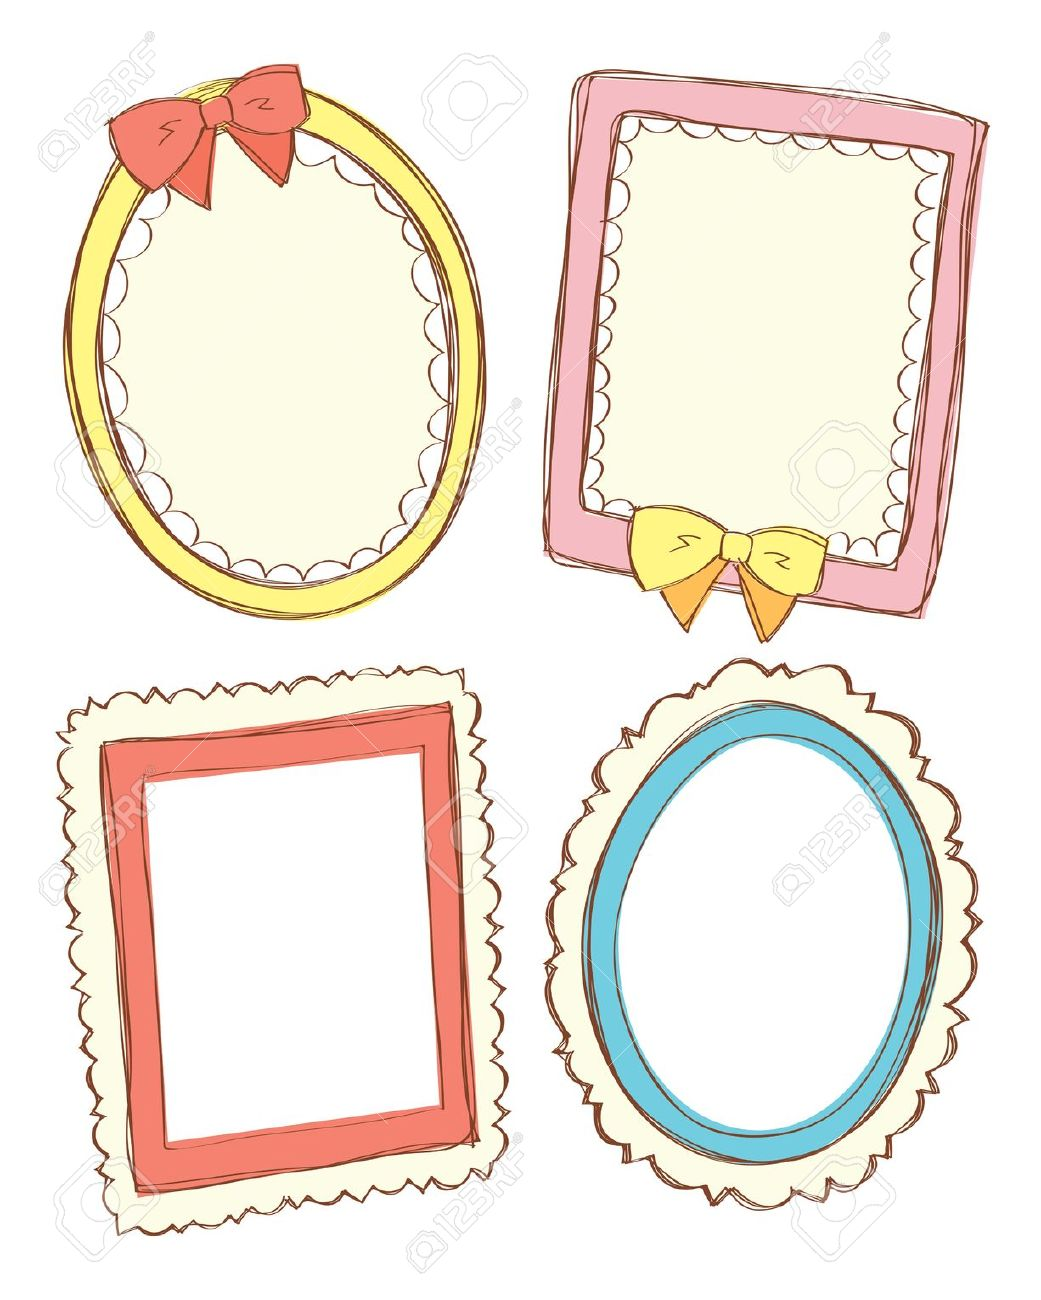 Cute Blank Clipart Frame furthermore Blank Ten Frame   Shake Count Color Write Addition Facts To On Tens Frame besides  besides Ten Frame Template With Dots likewise D B D A B Aaf B. on blank ten frame template printable